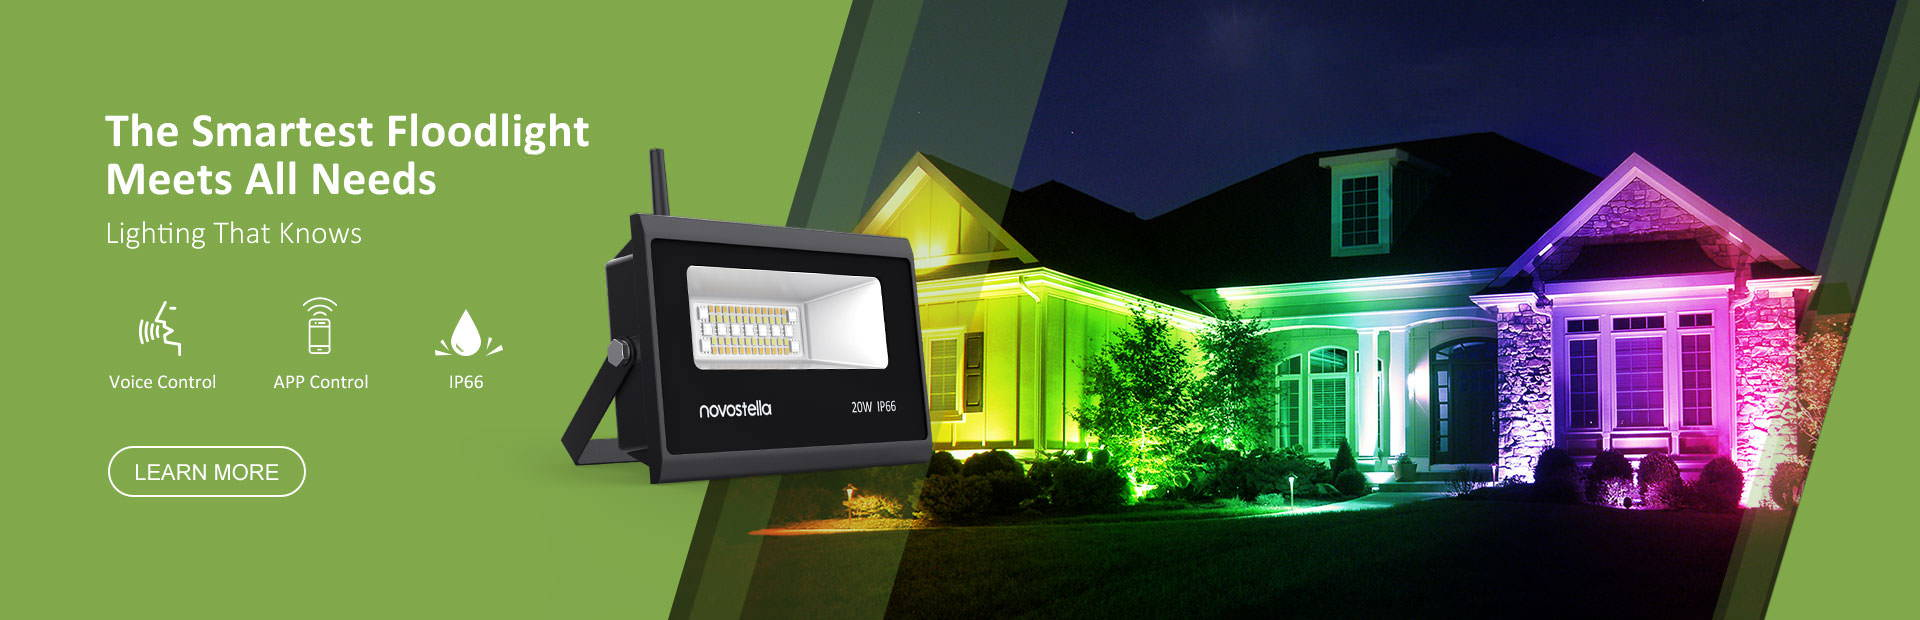 smart LED floodlight